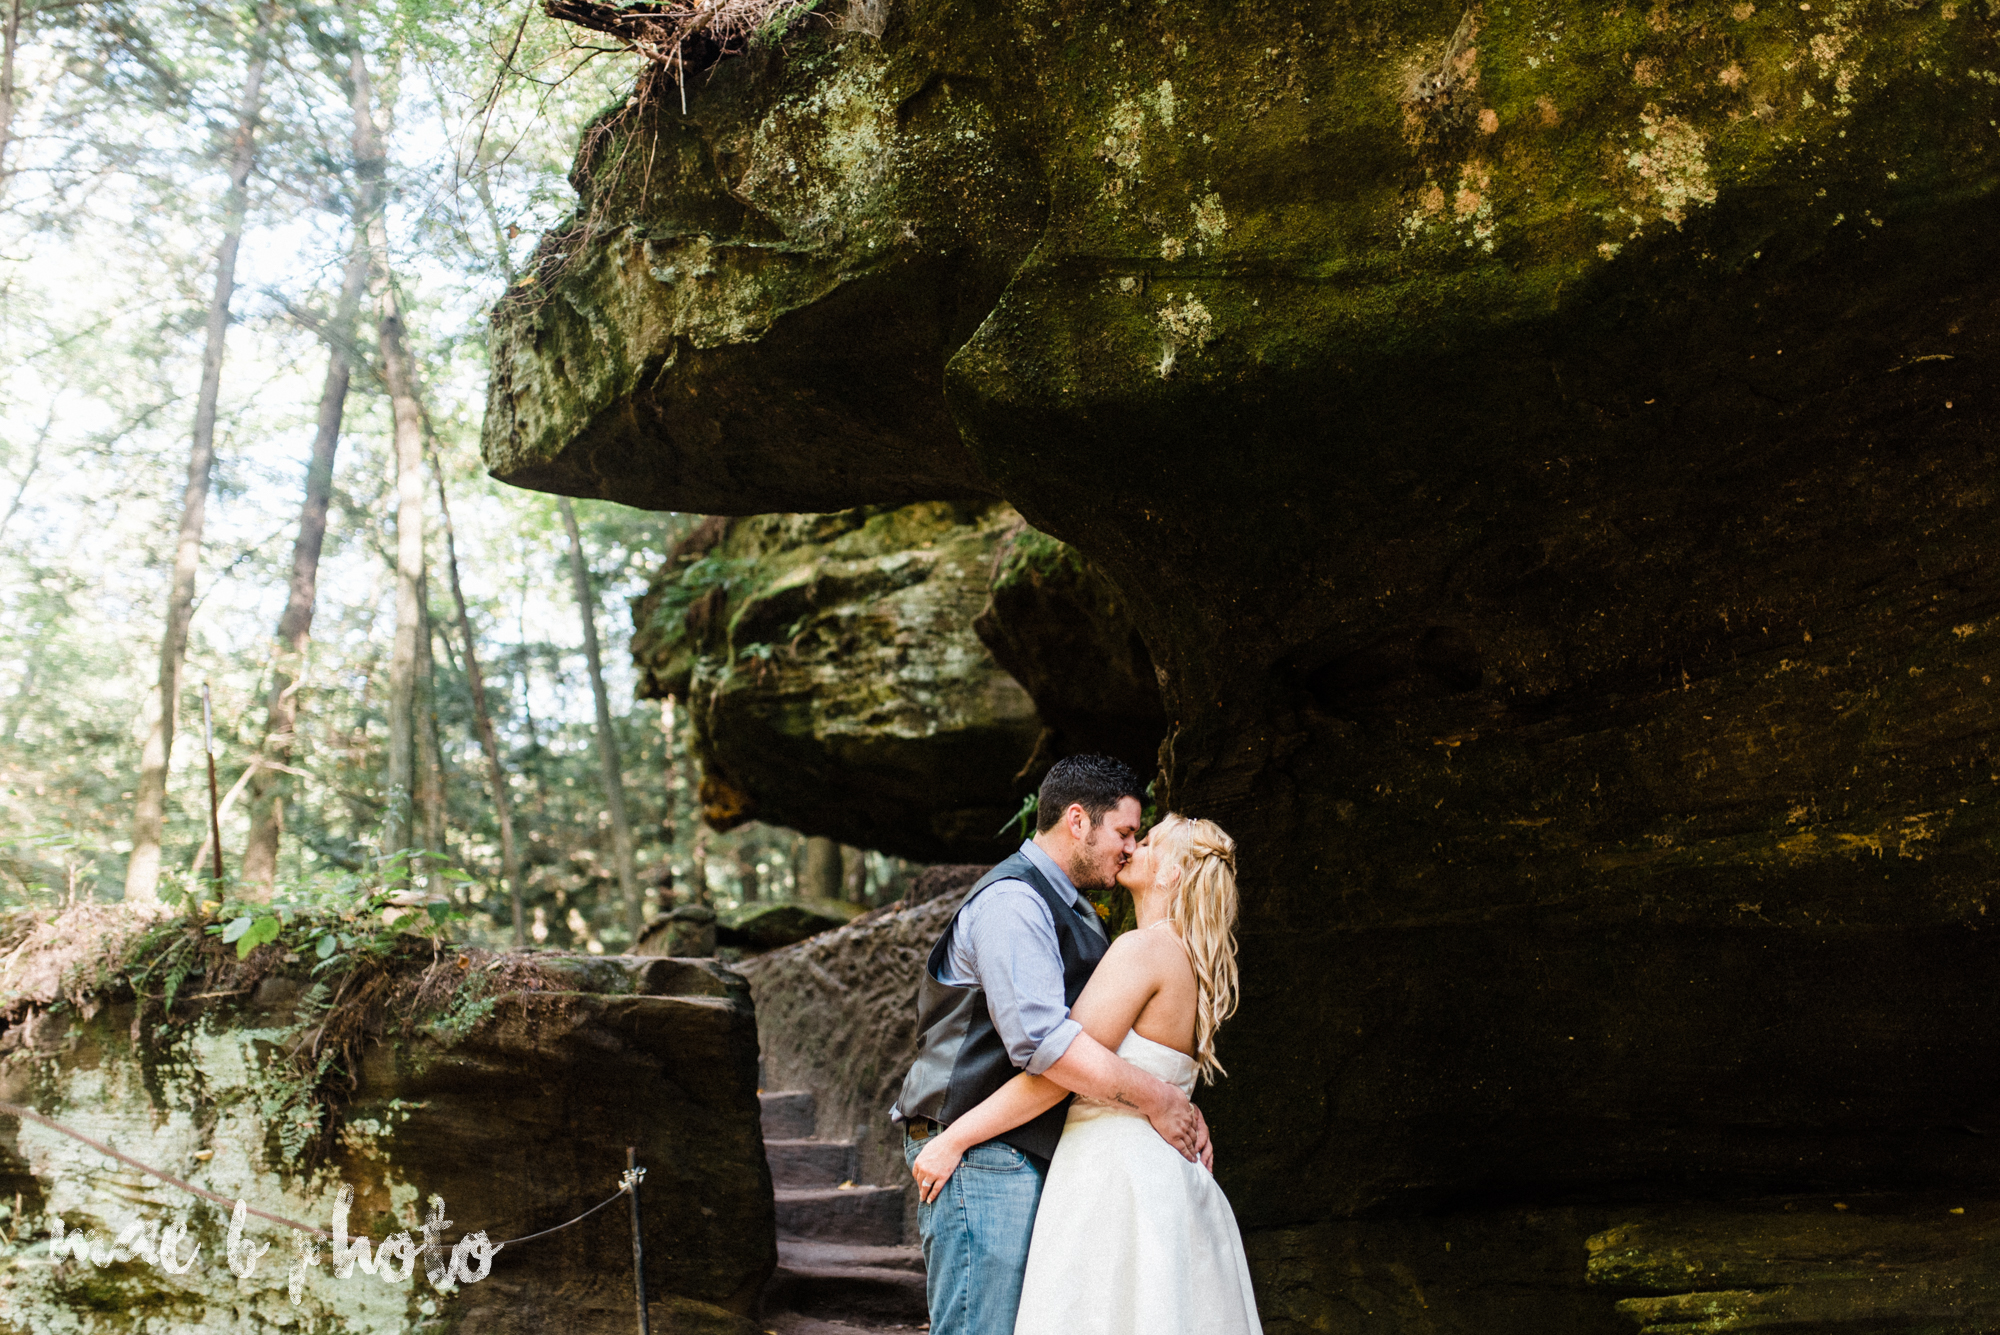 bobbi and pat's intimate fall cabin elopement in hocking hills old man's cave and rock house in logan ohio photographed by youngstown wedding photographer mae b photo-69.jpg